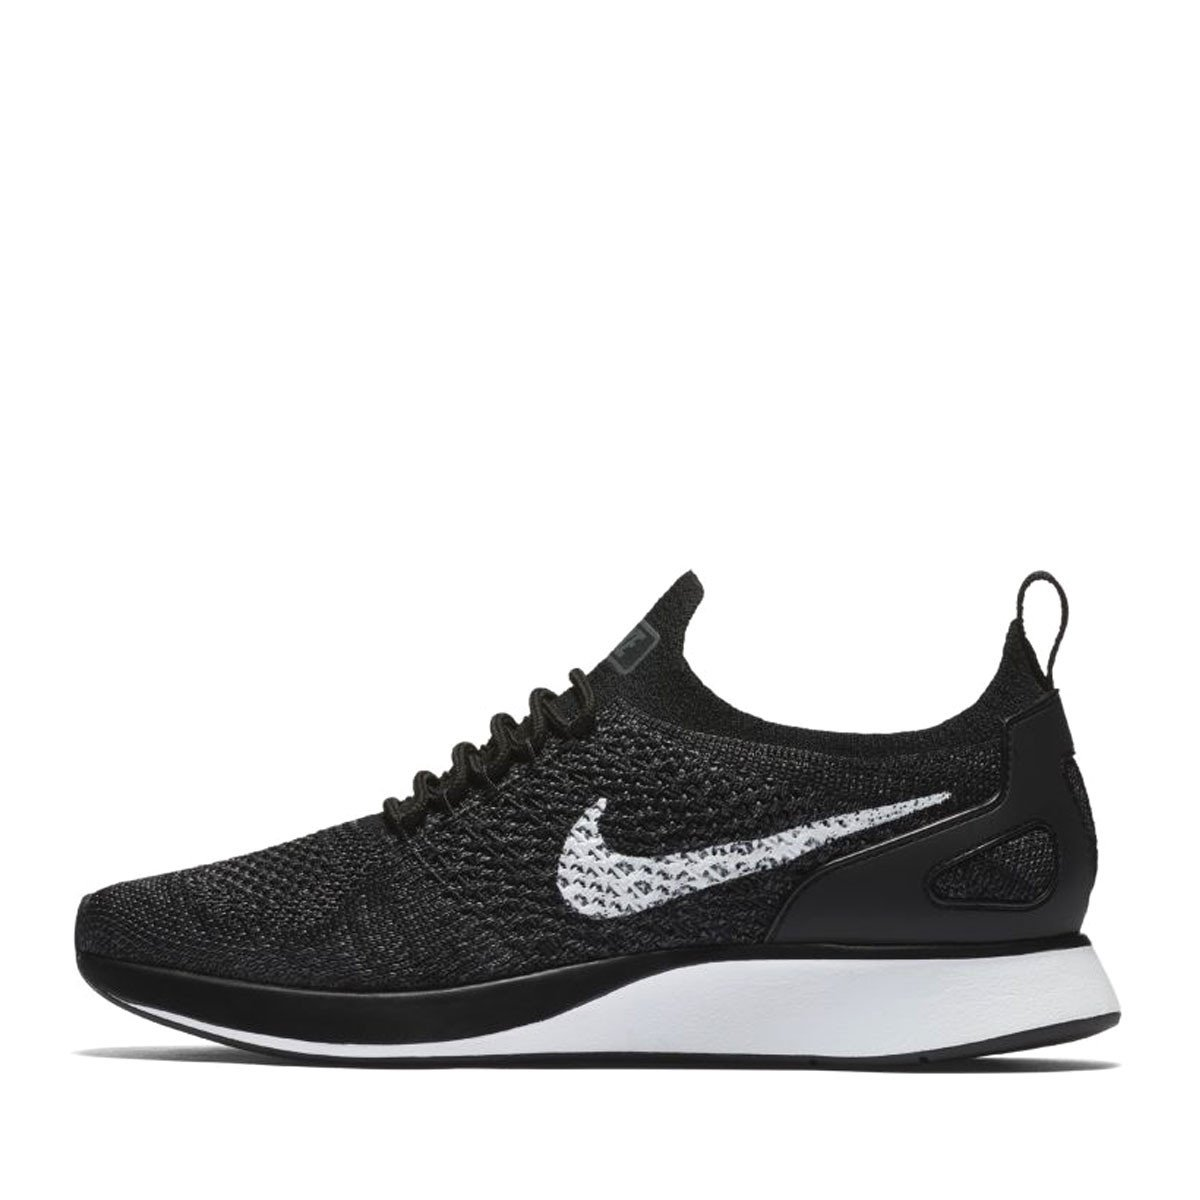 cf52195462f63 Galleon - NIKE AIR Zoom Mariah Flyknit Racer Women s Running Shoes  Black White Dark Grey Aa0521-006 (10.5 B(M) US)